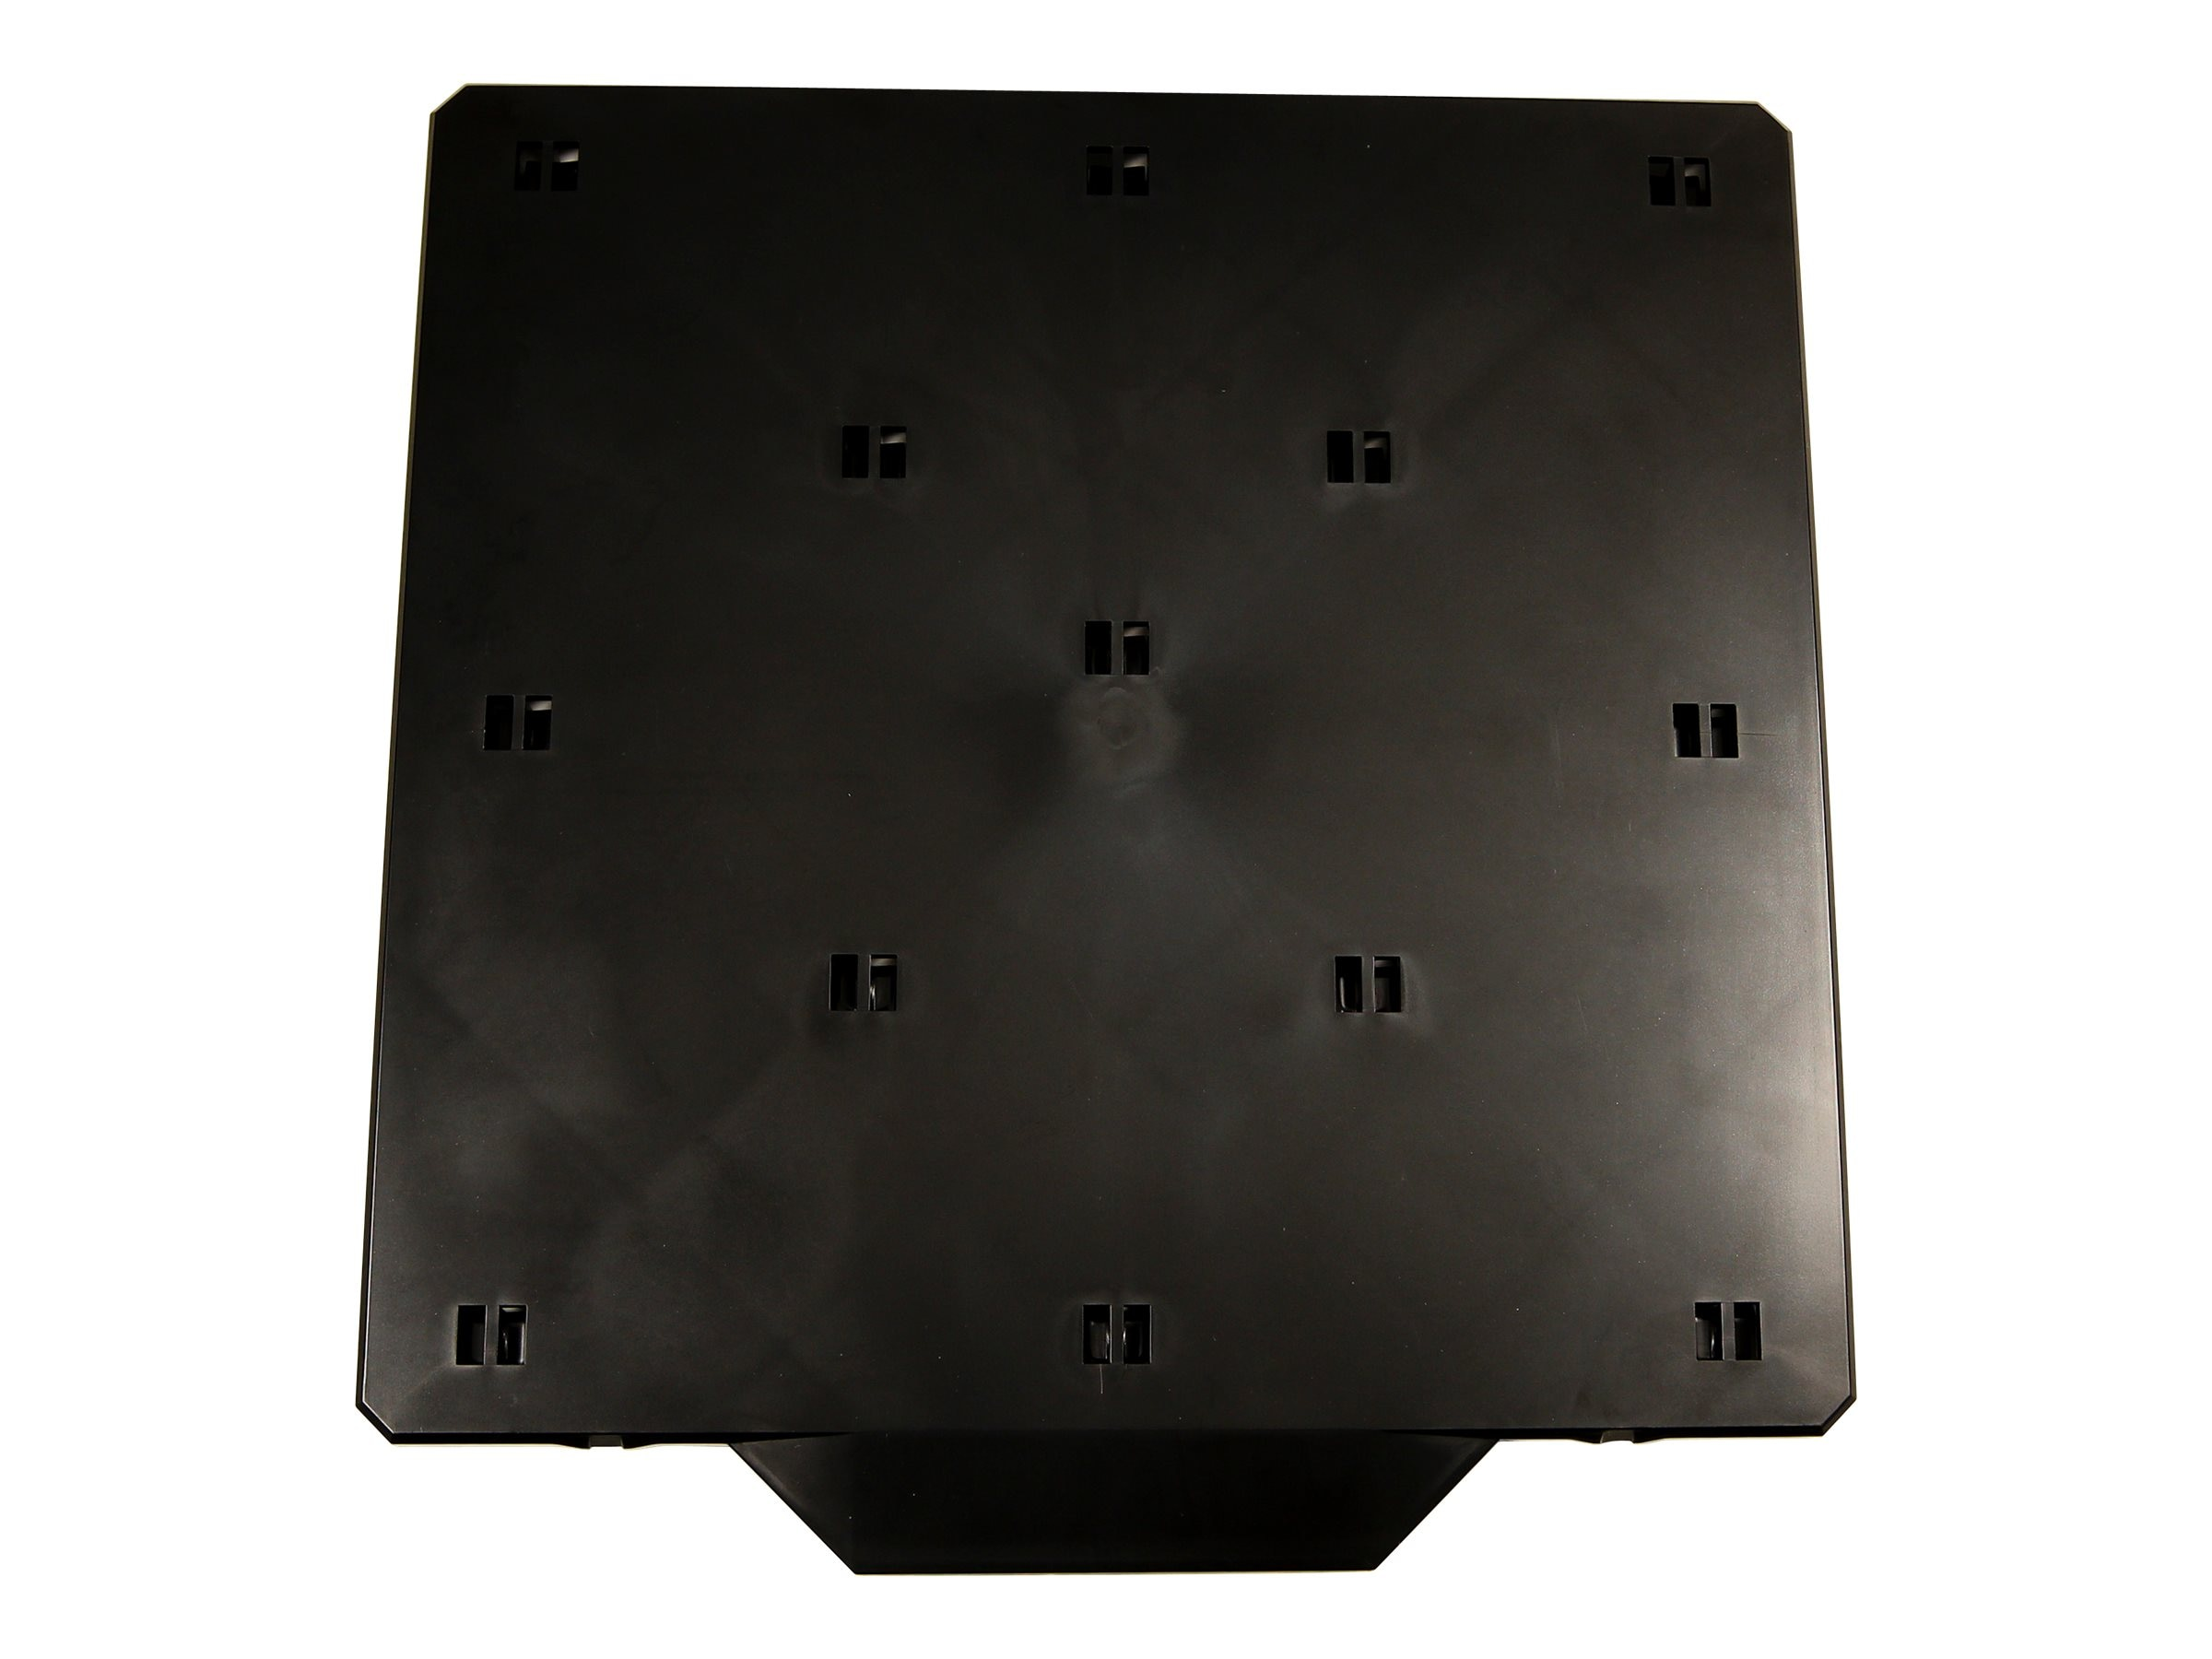 MakerBot Build Plate for Z18